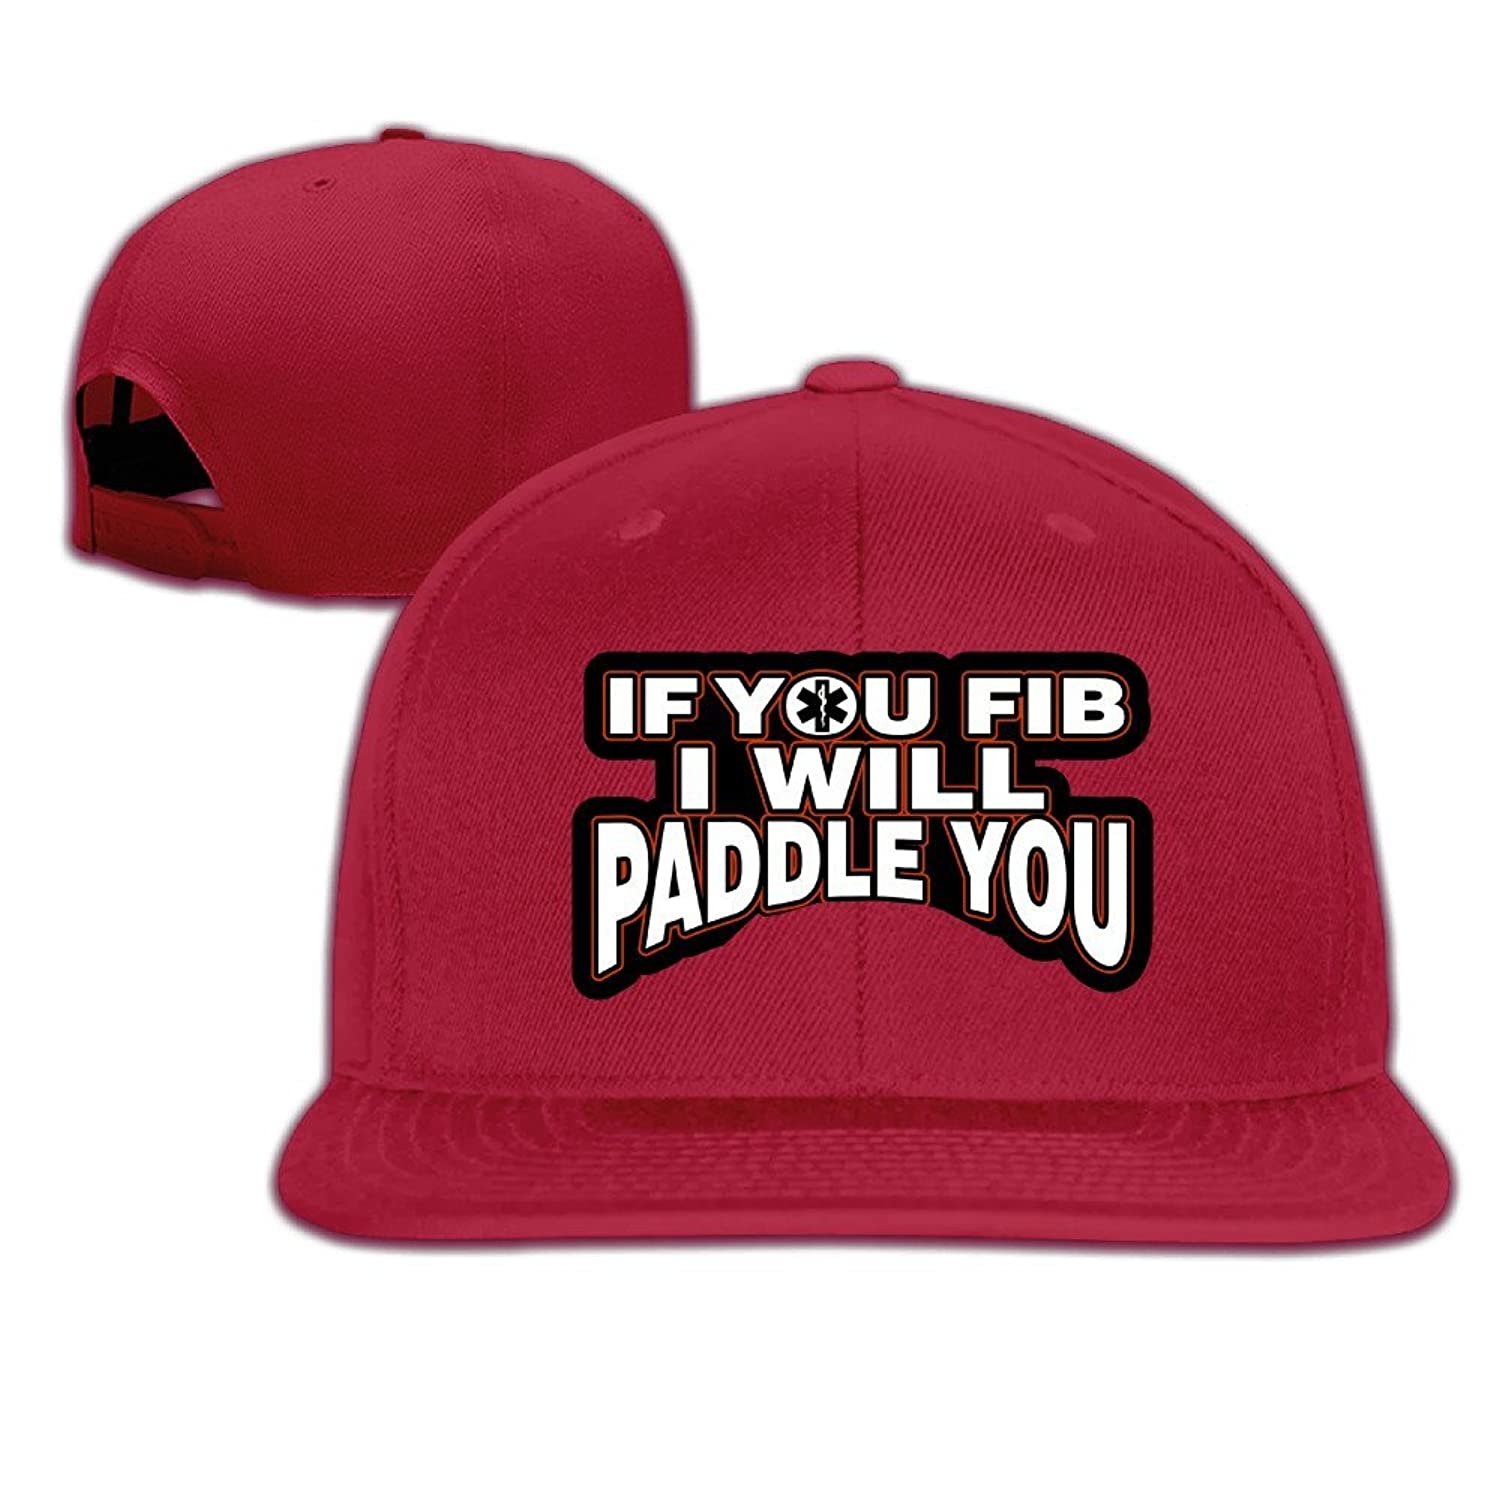 If You Fib I Will Paddle You Fitted Flat Brim Baseball Hat